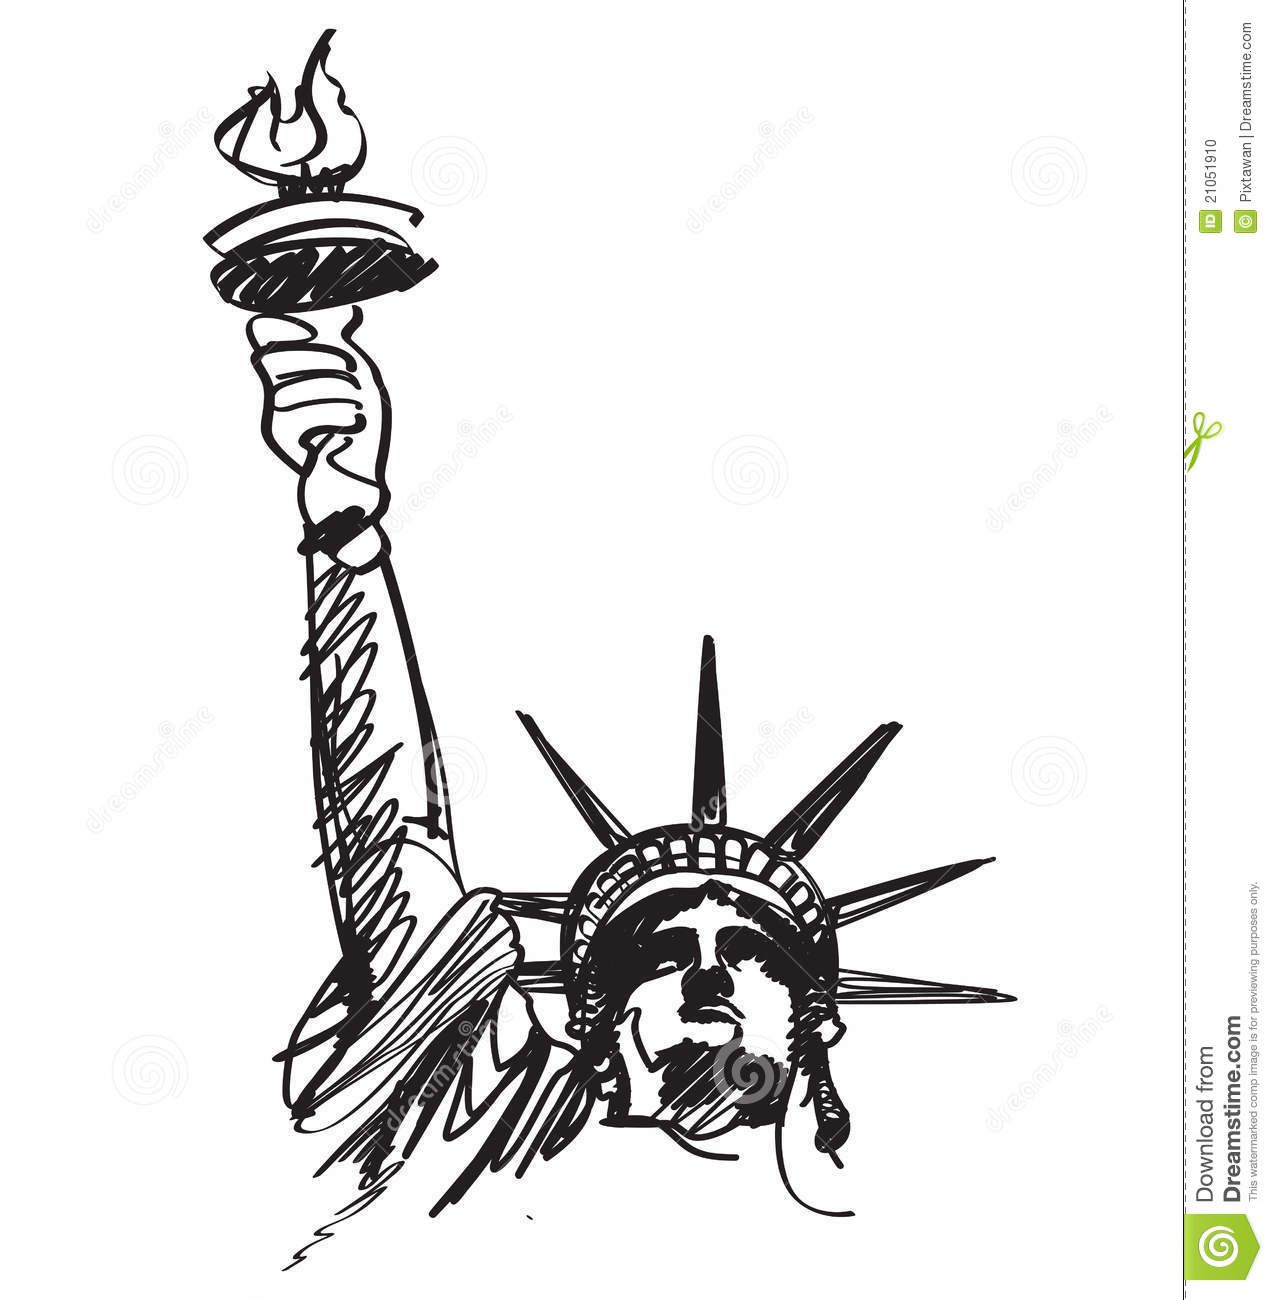 Statue Of Liberty Sketch Black And White